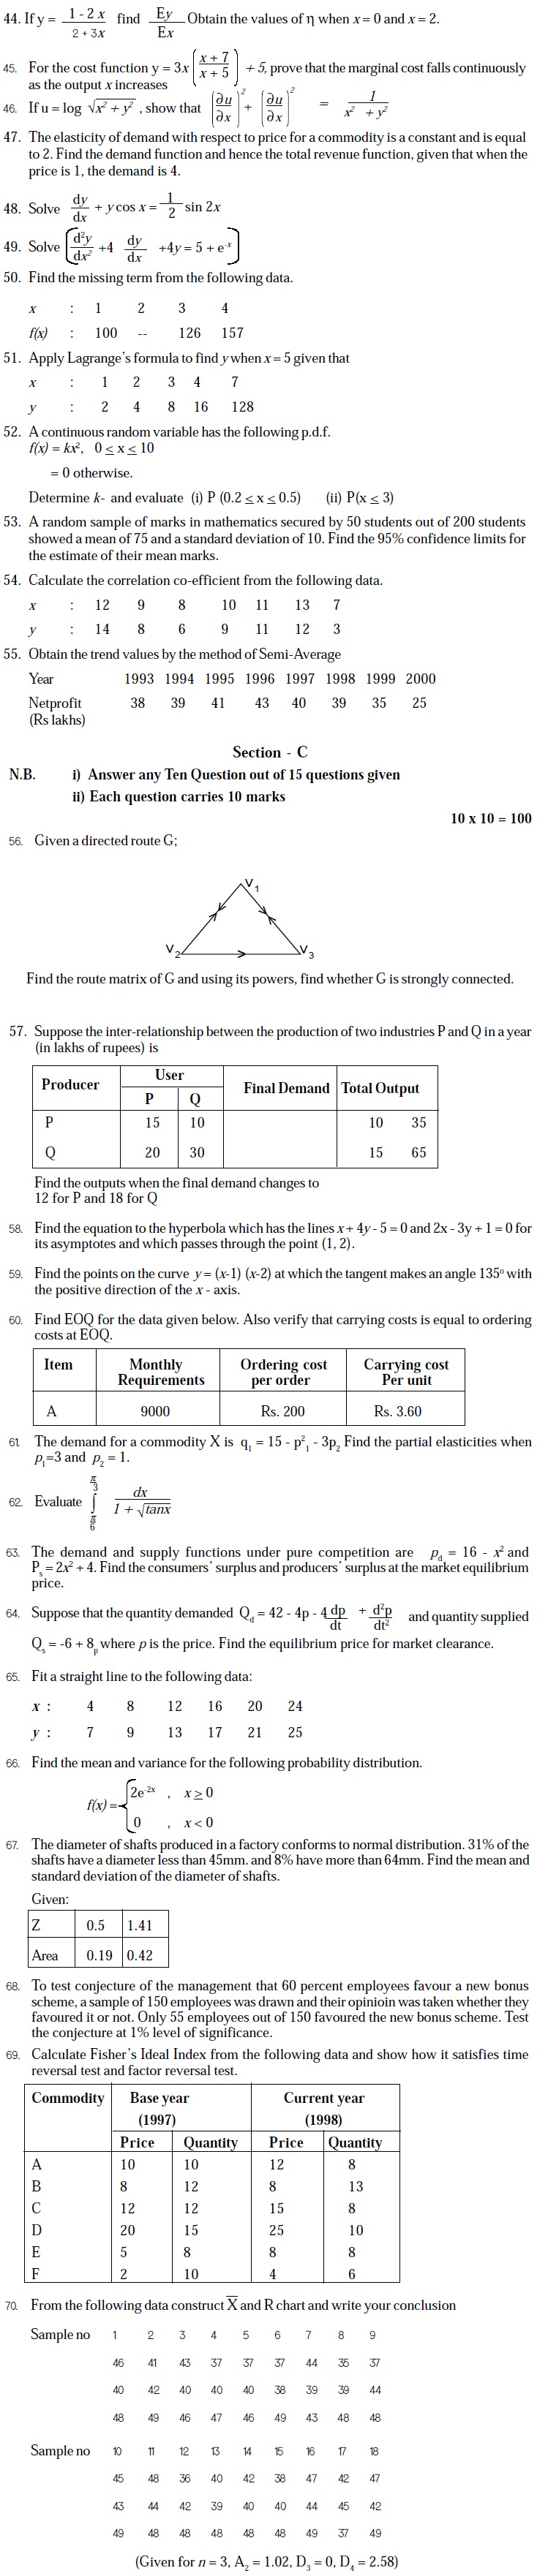 tamil nadu state board class model question paper business tamil nadu board of higher secondary education sample paper model paper for class 12 business mathematics is given below